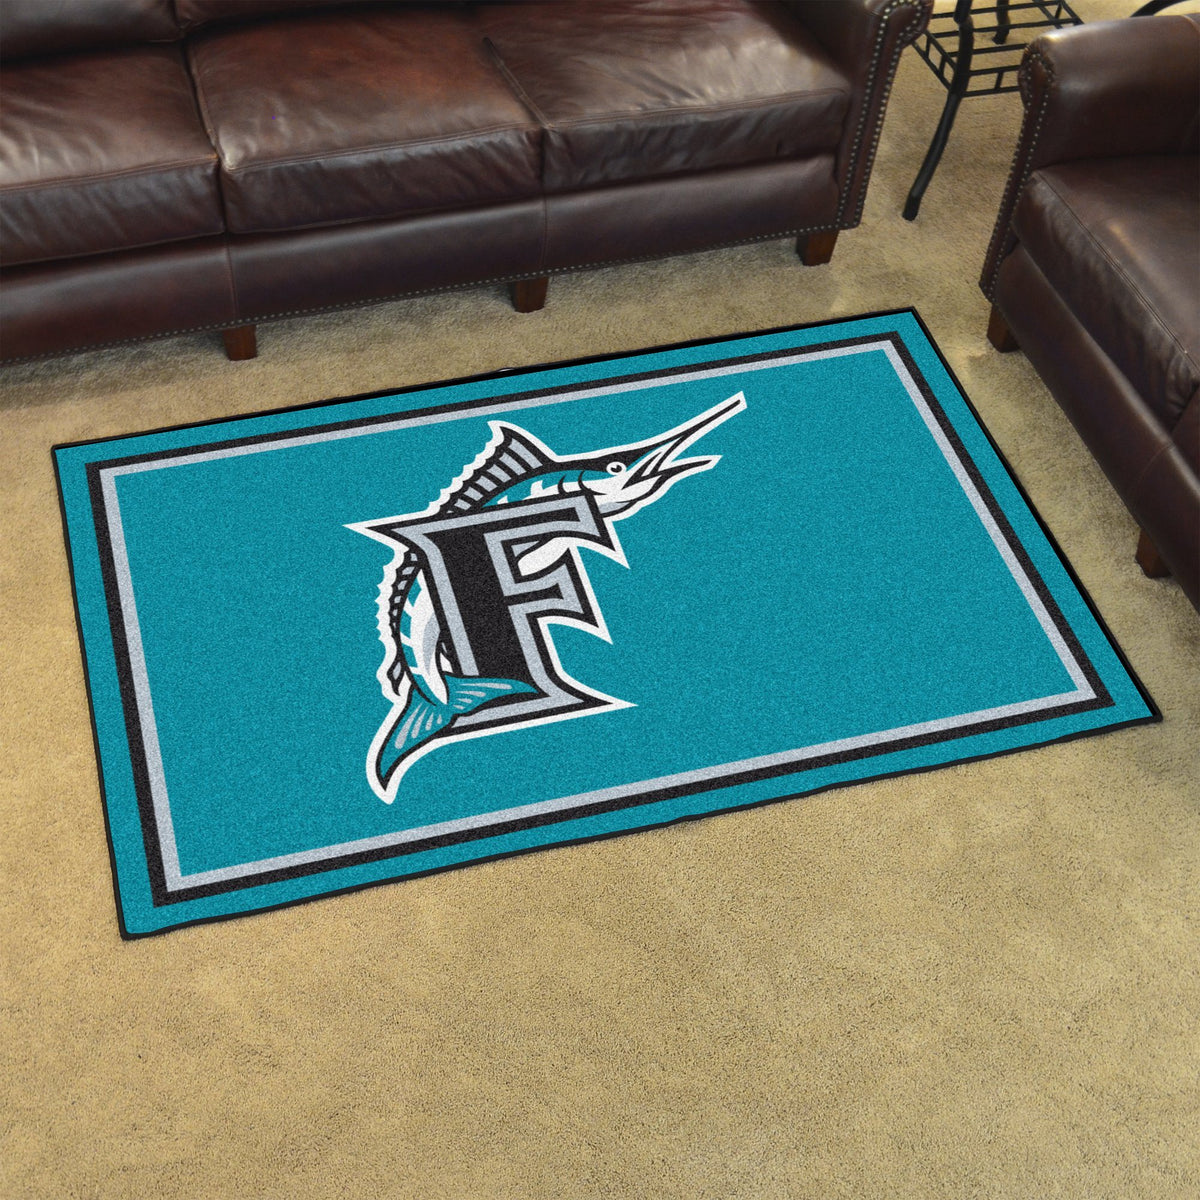 MLB Retro - 4' x 6' Rug MLB Retro Mats, Plush Rugs, 4x6 Rug, MLB, Home Fan Mats Florida Marlins